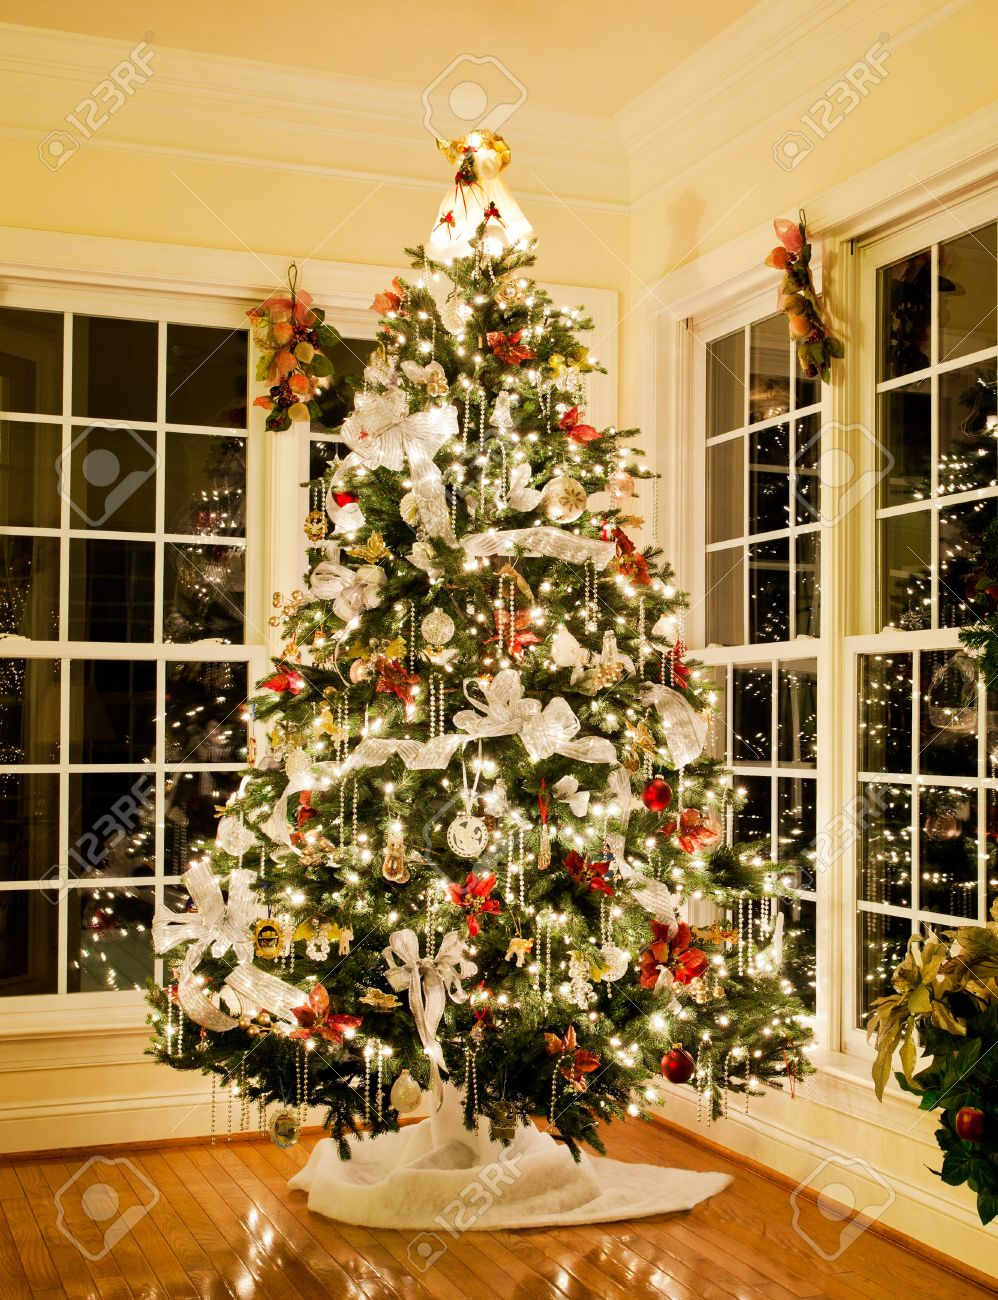 Christmas Tree Decorated With Silver And White Ribbons And Ornaments Stock Photo Picture And Royalty Free Image Image 11526711